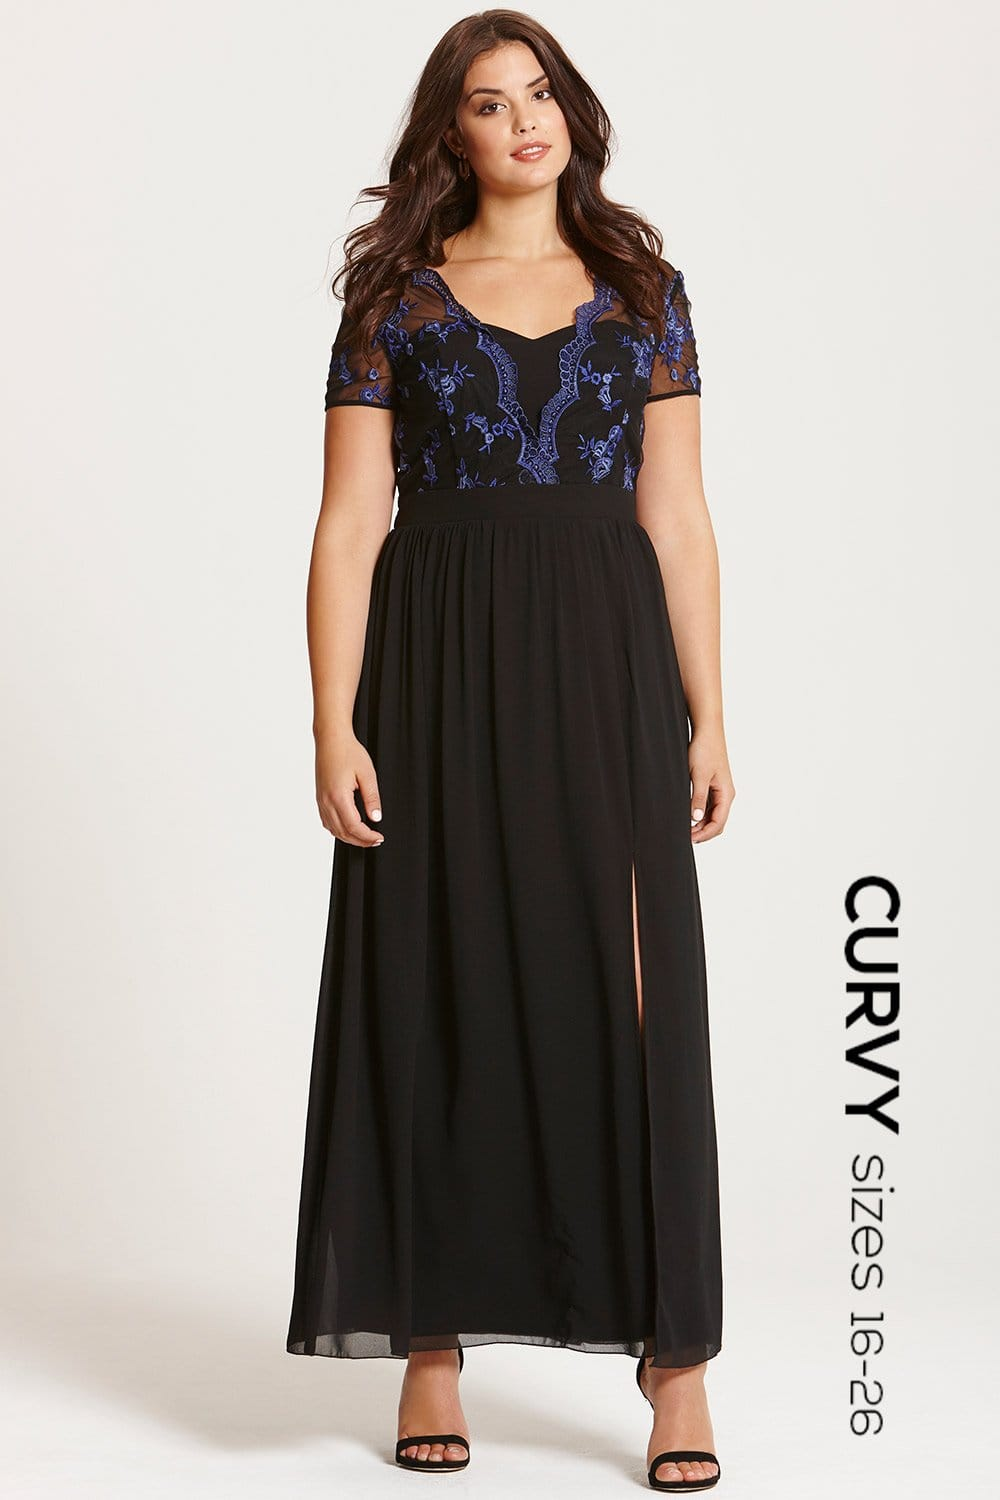 Dress up your standard black maxi dress with pretty much any shoes and accessory. Conversely, a blue maxi dress, red maxi dress, or yellow maxi dress can be worn beautifully with golds, silvers, and other neutral-toned pieces.